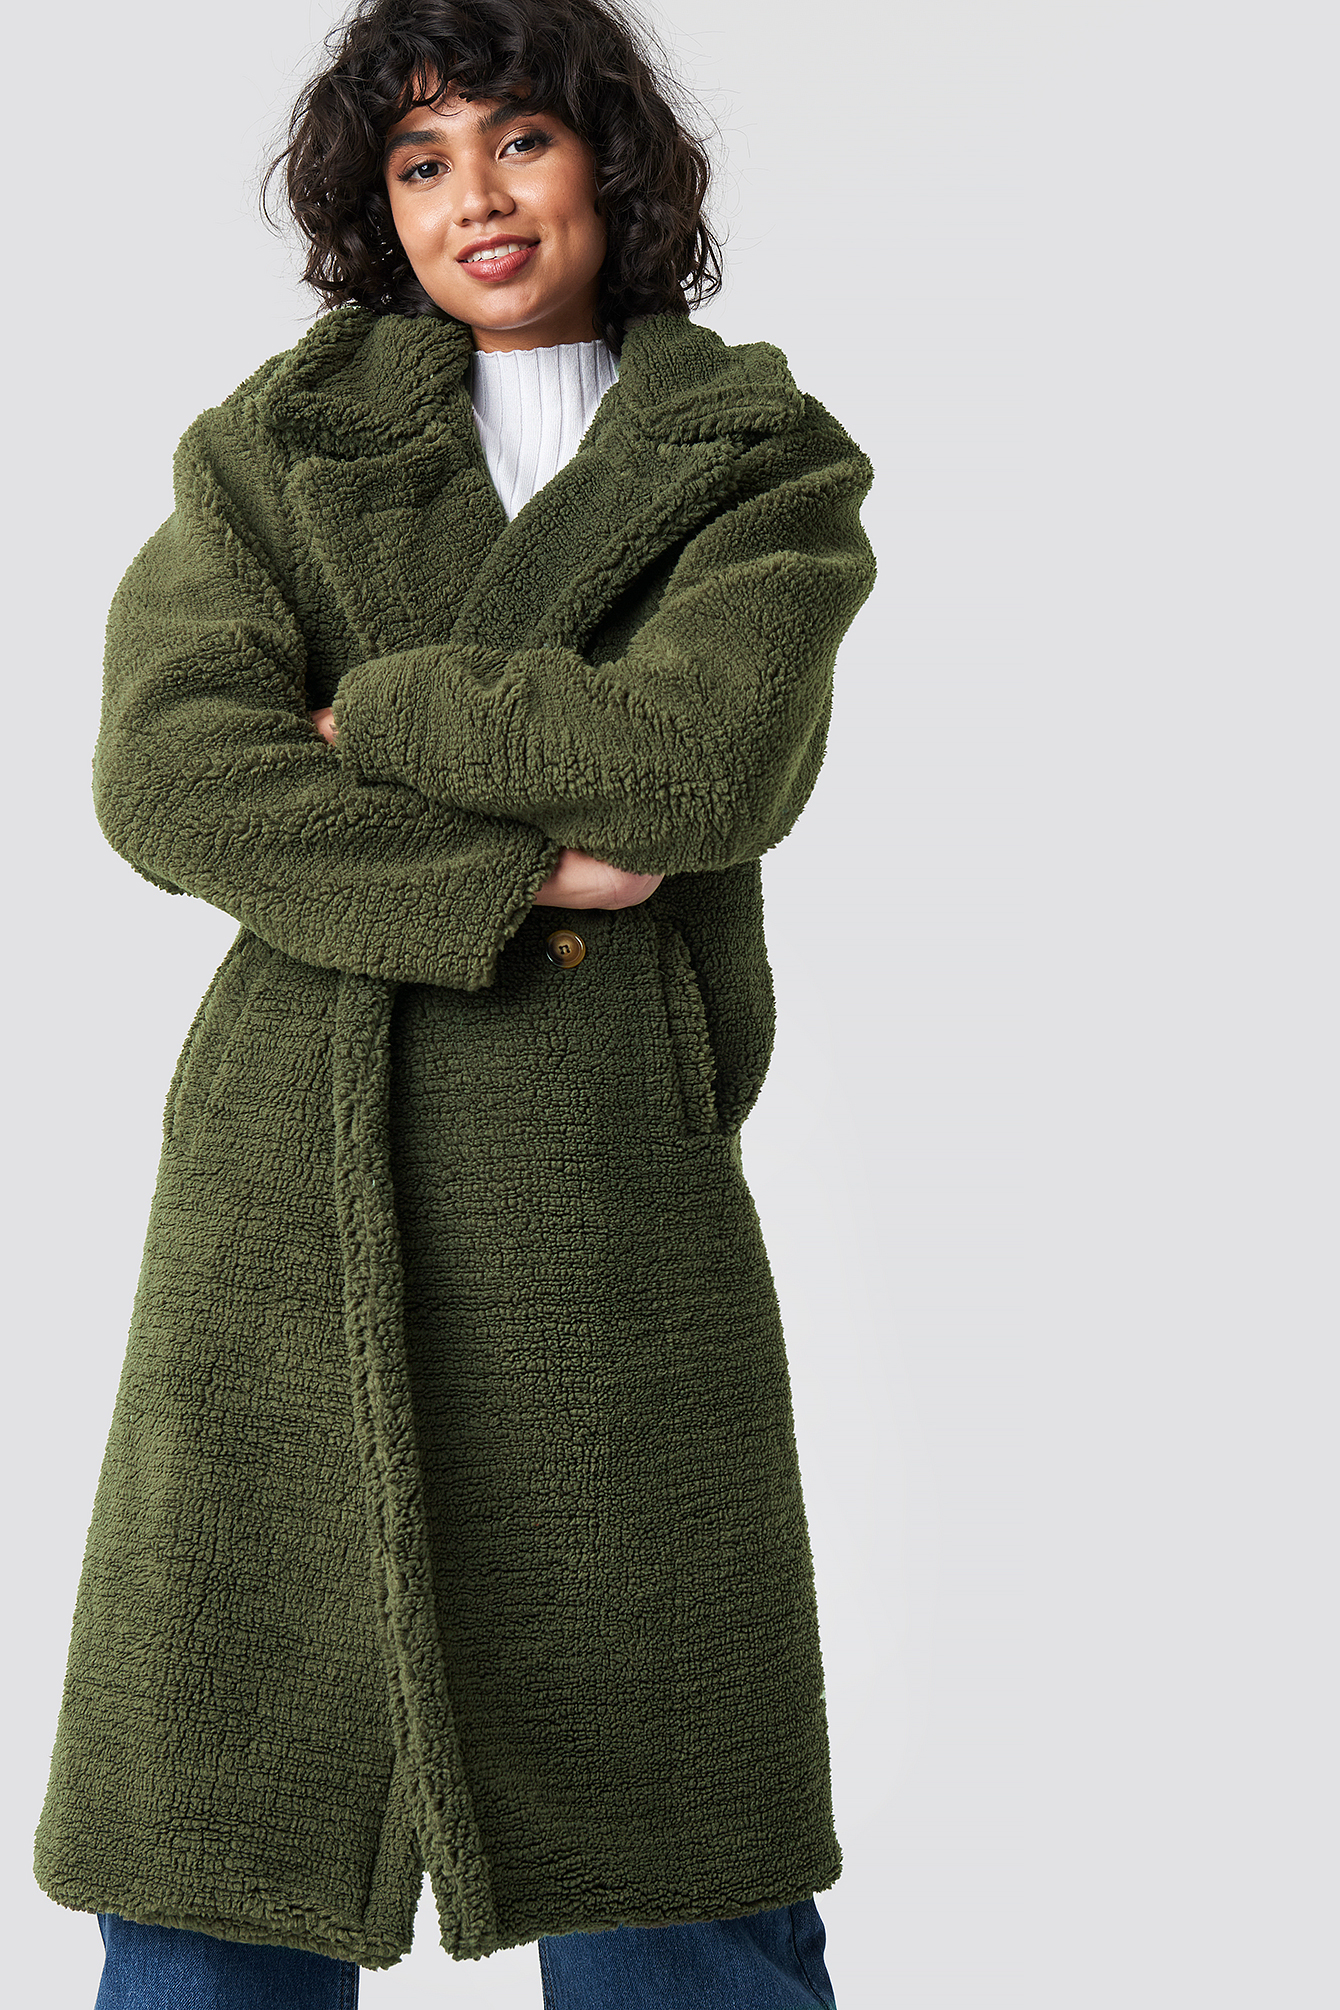 COLOURFUL REBEL Nora Long Teddy Coat - Green